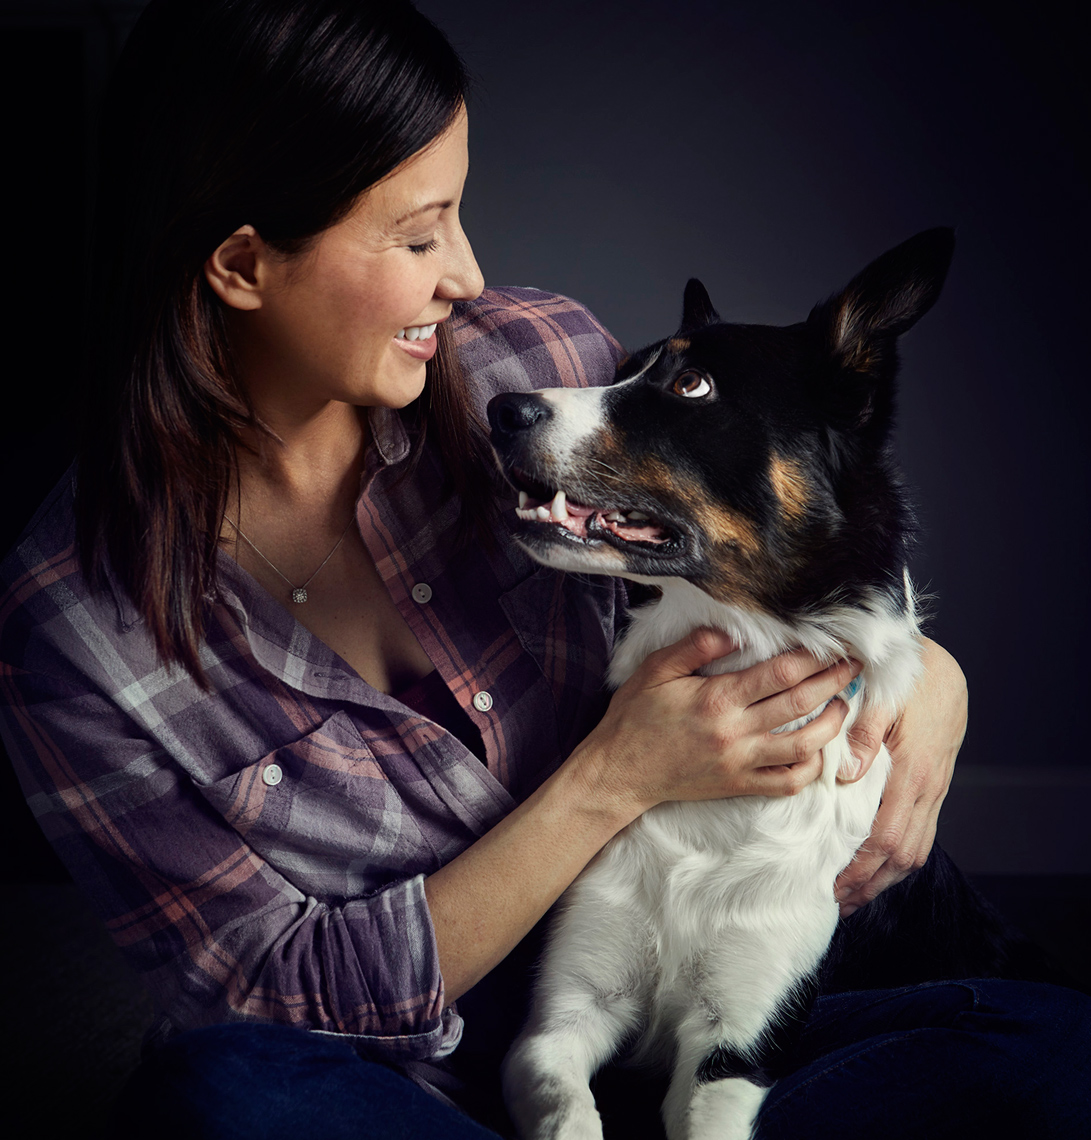 Woman embracing dog